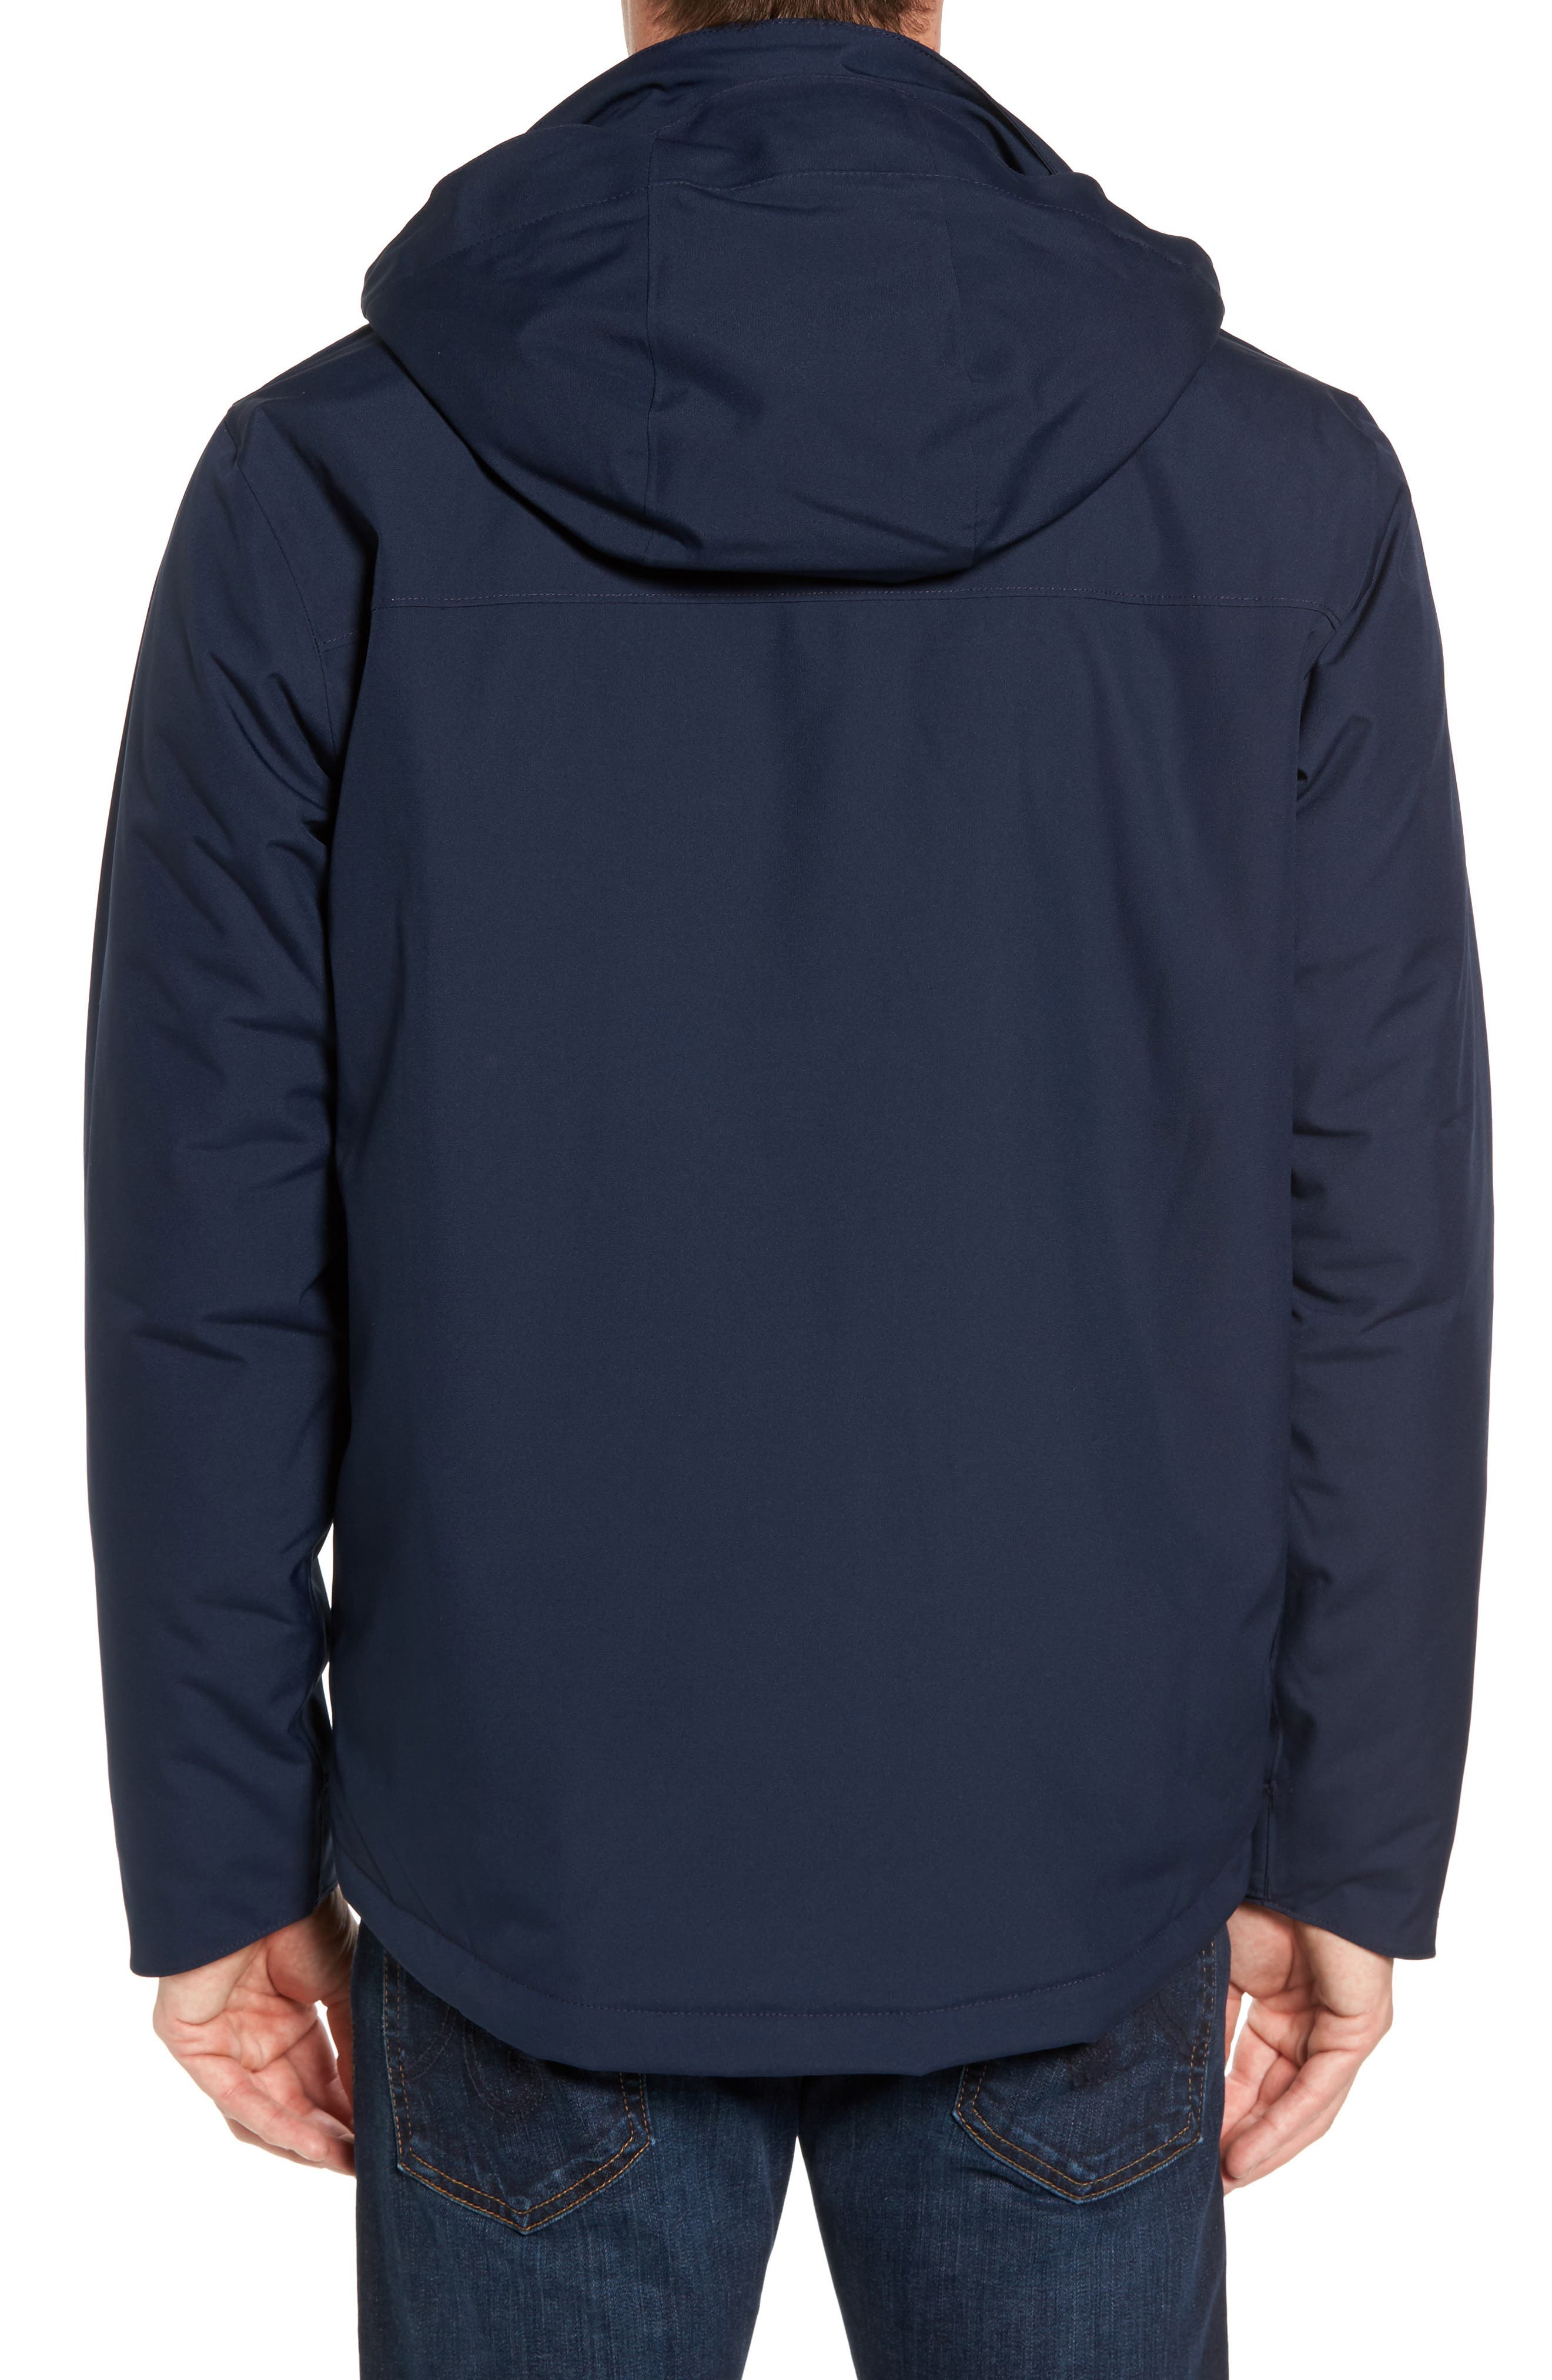 Topley Waterproof Jacket,                             Alternate thumbnail 2, color,                             Navy Blue